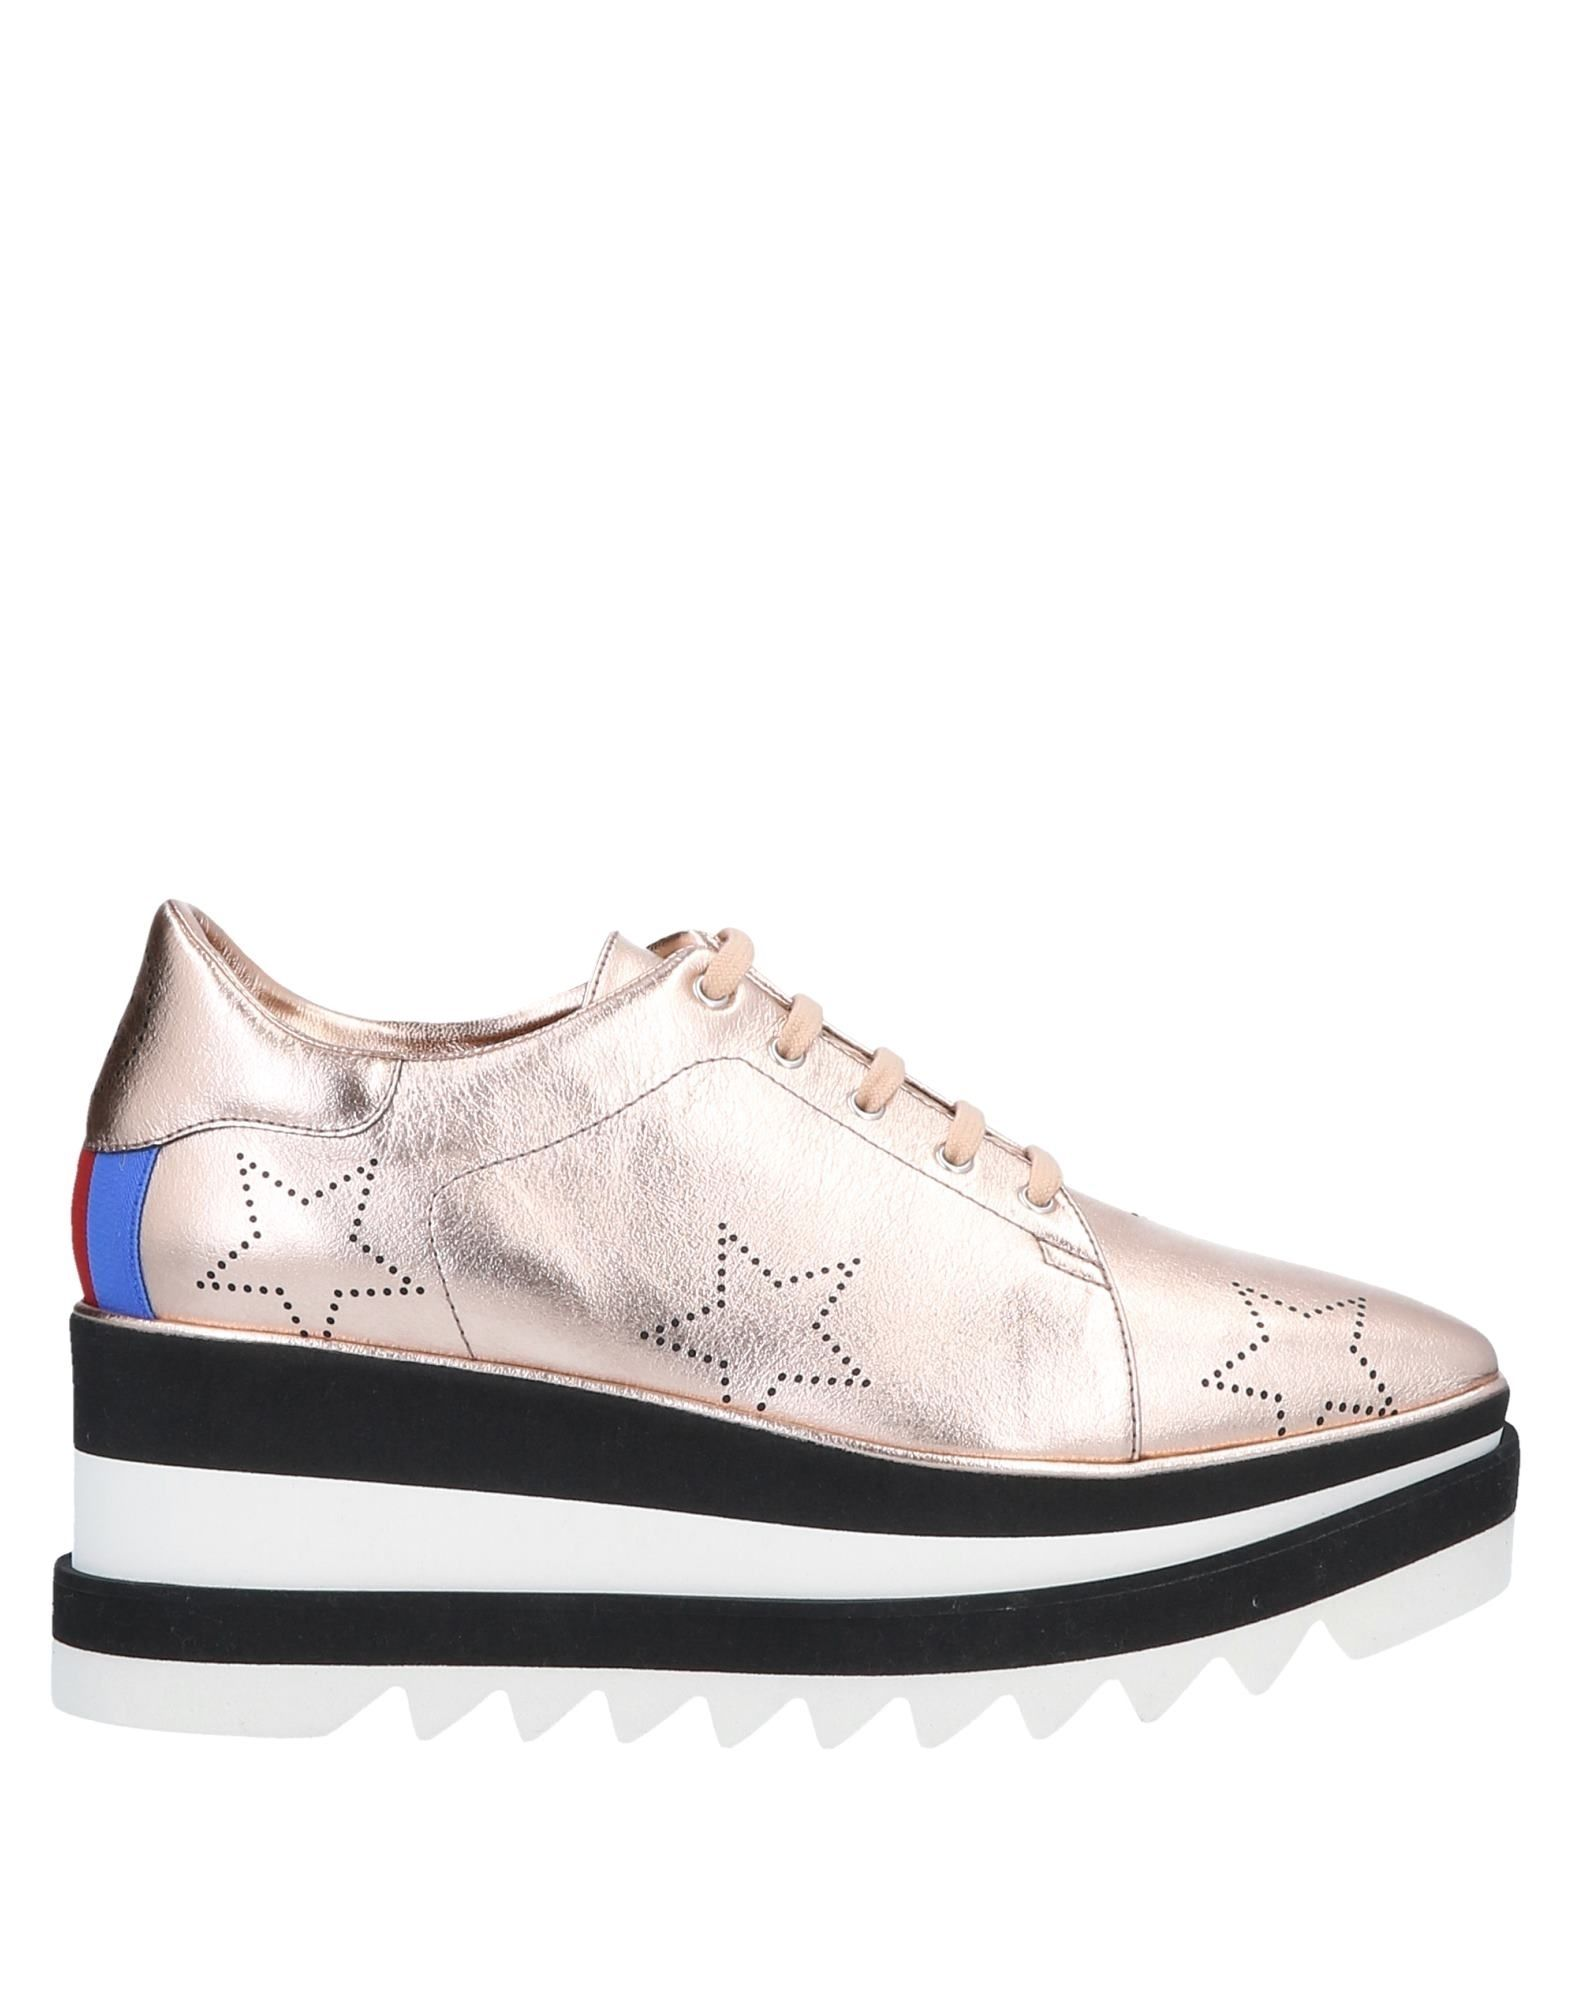 Stella Mccartney Sneakers - Women Stella Mccartney Sneakers online on 11563452HA  United Kingdom - 11563452HA on c443bb